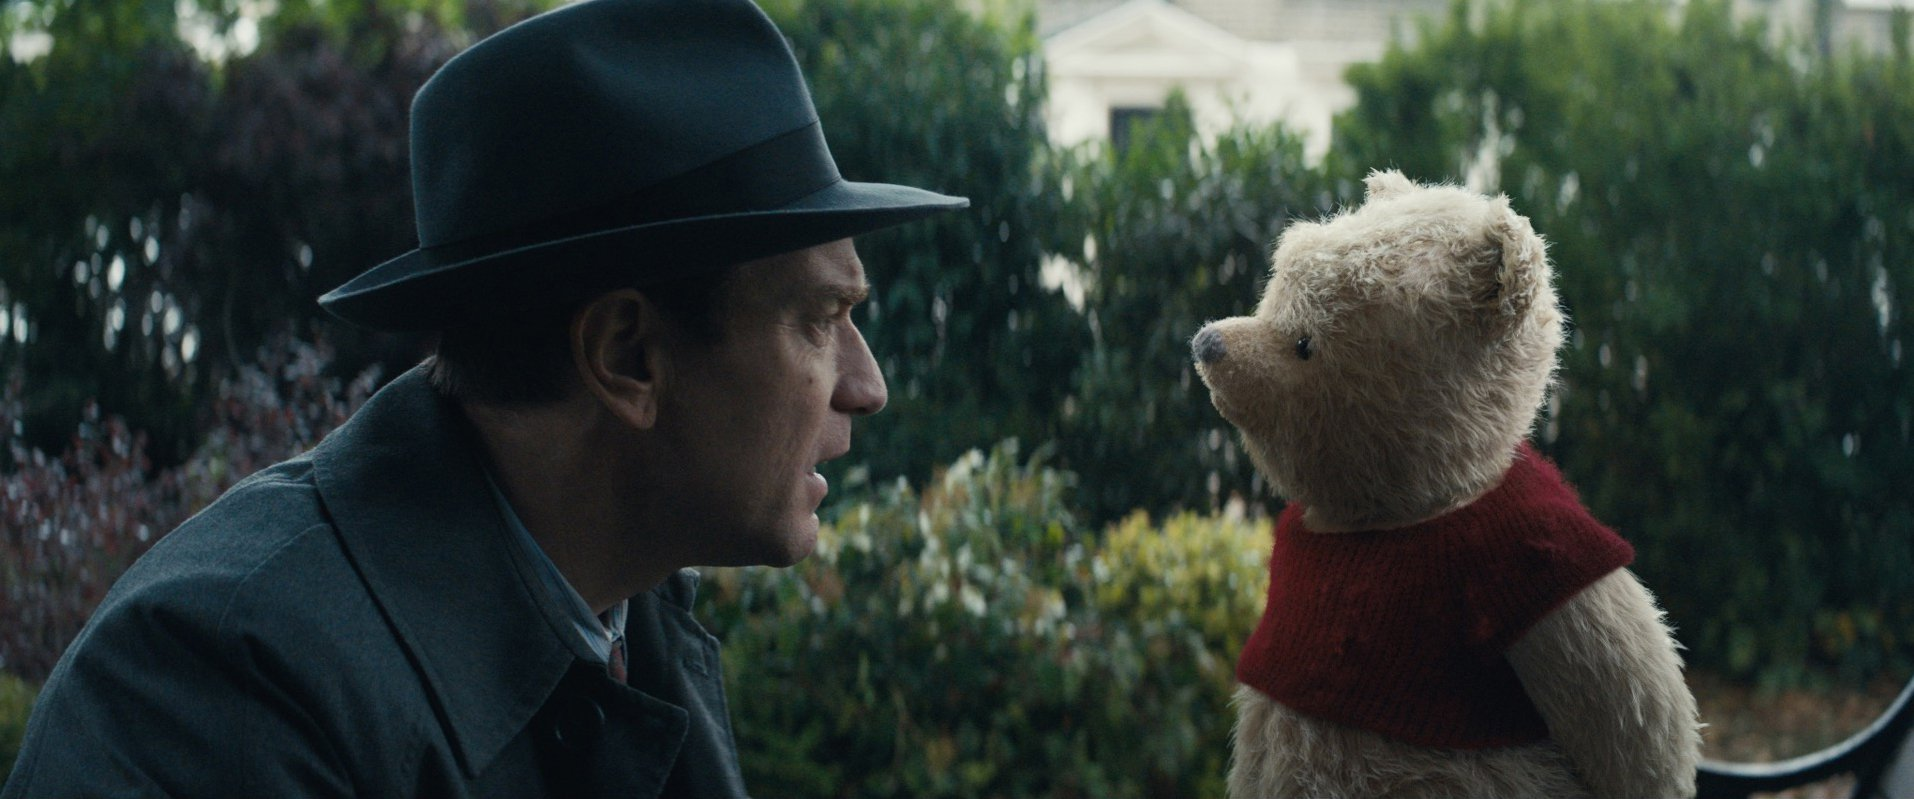 Ewan McGregor and Winnie-the-Pooh in the film.